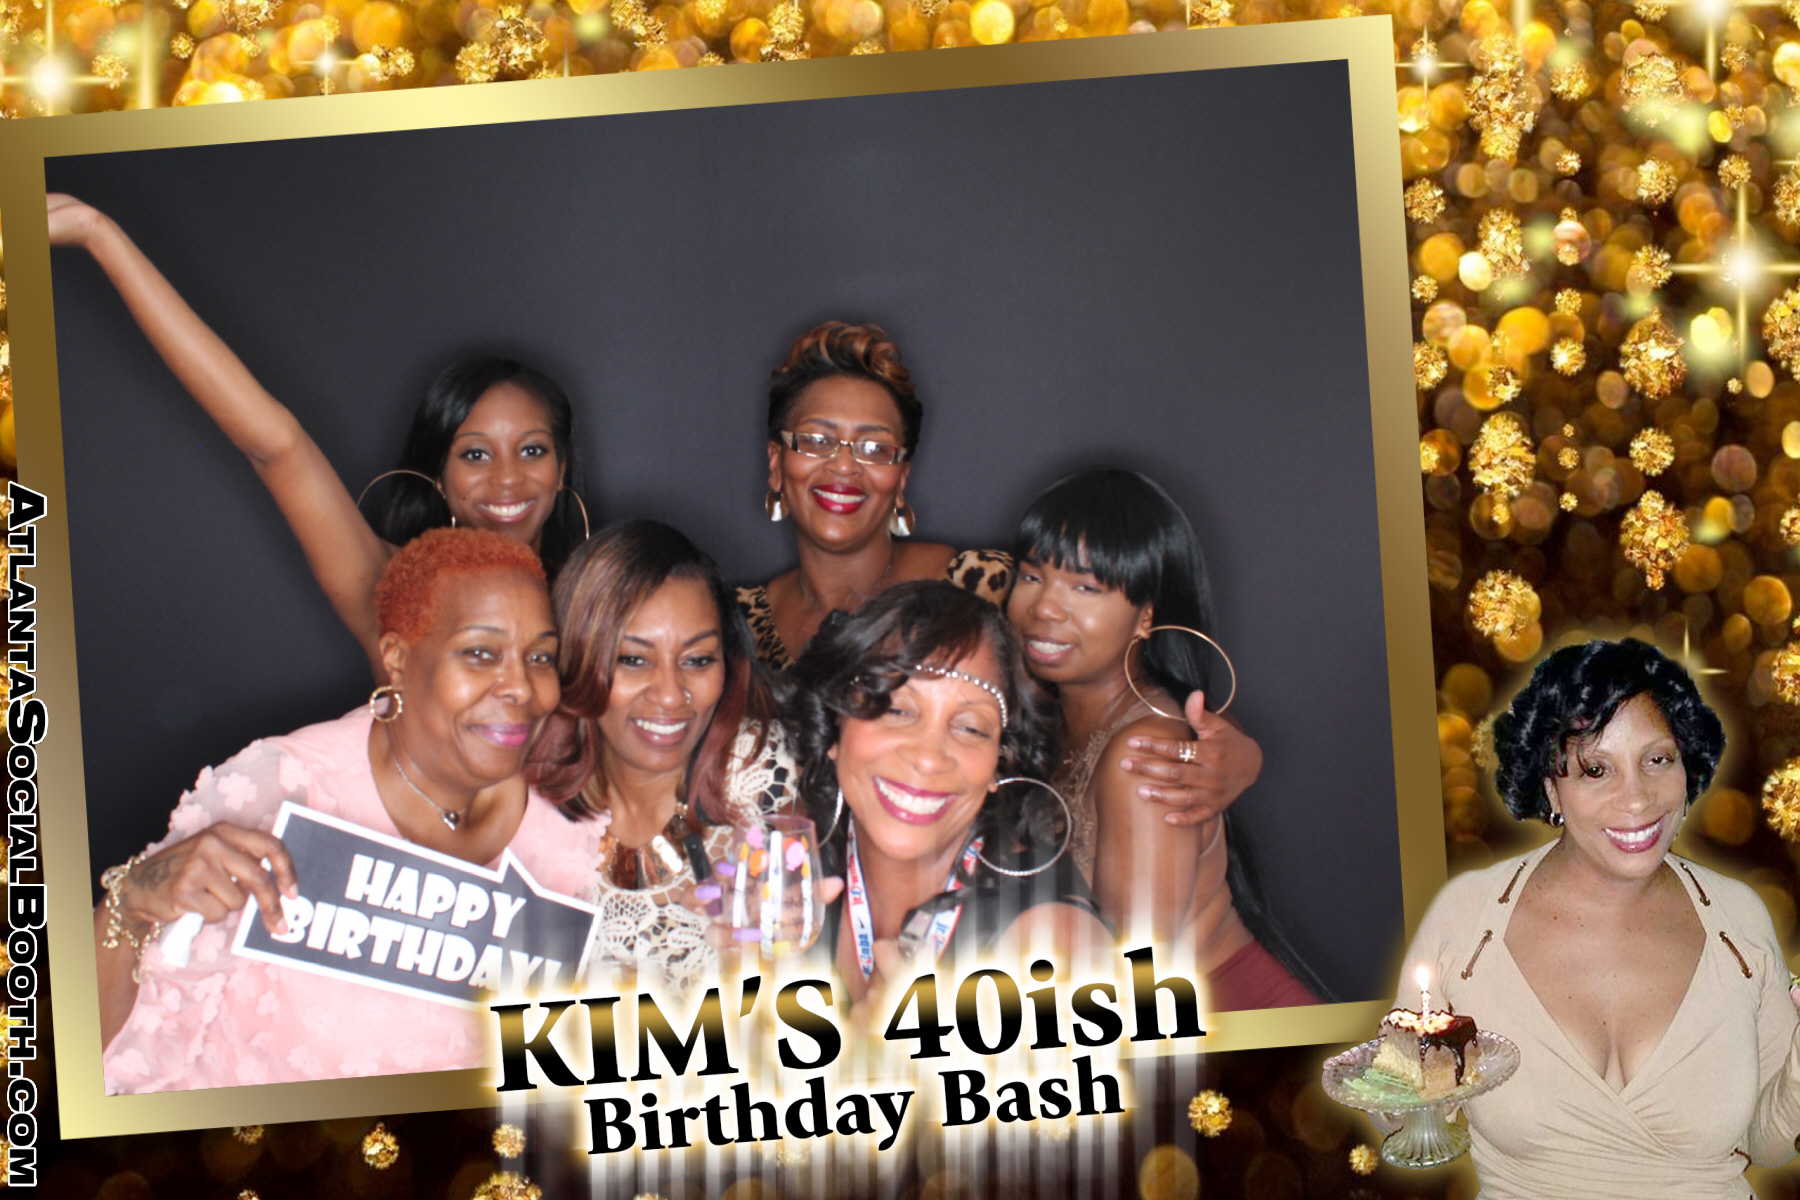 Kim 40ish Birthday Bash